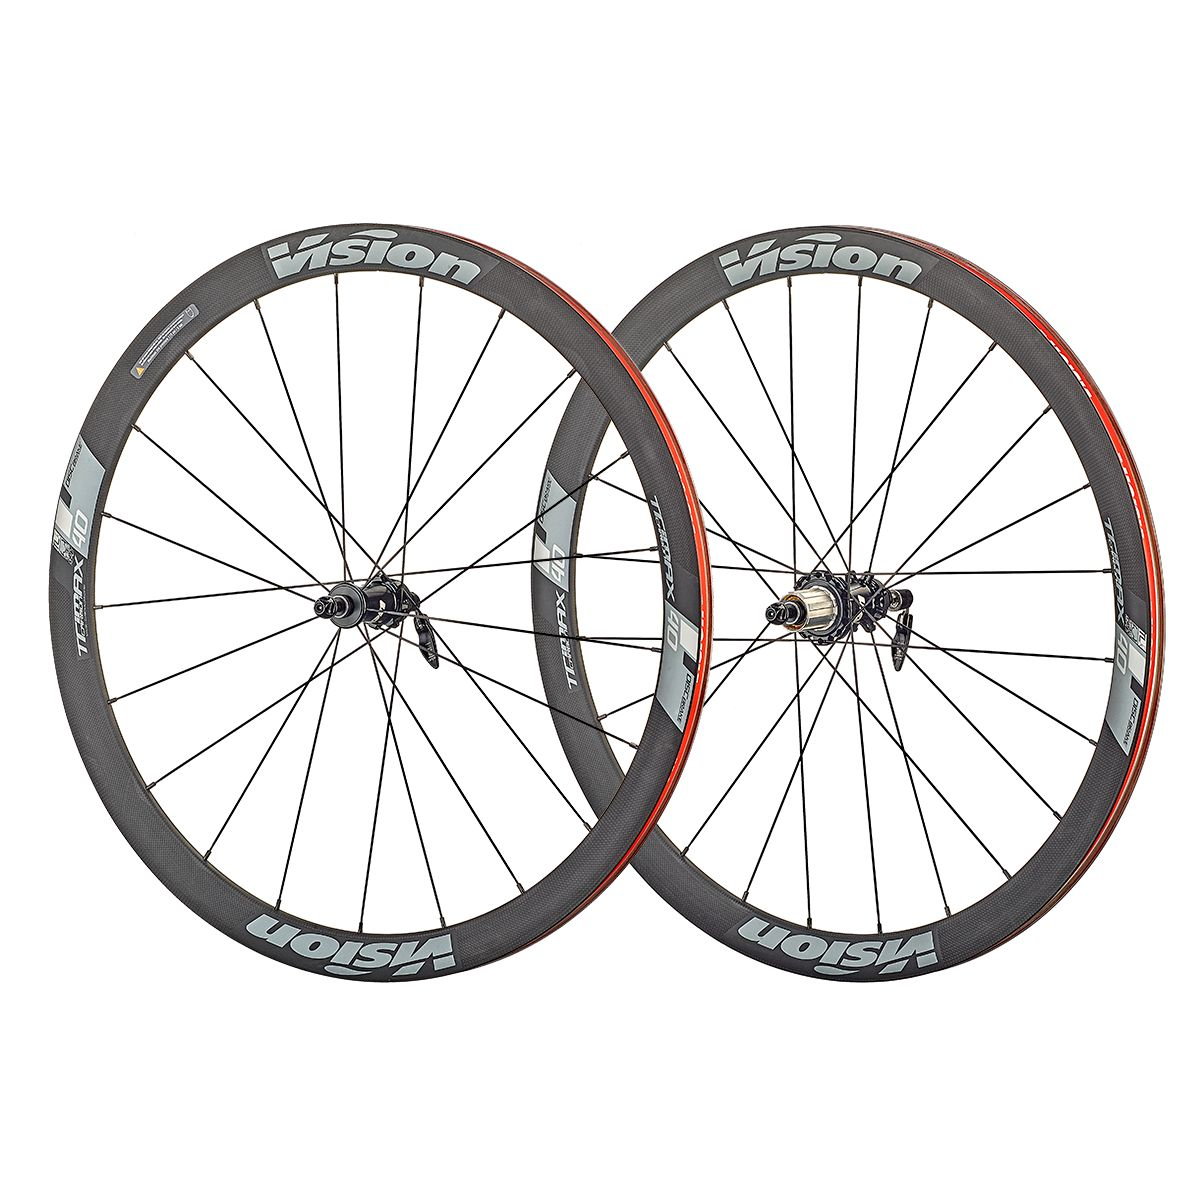 "Trimax Carbon 40 Disc Wheels 28"" CL Shimano"